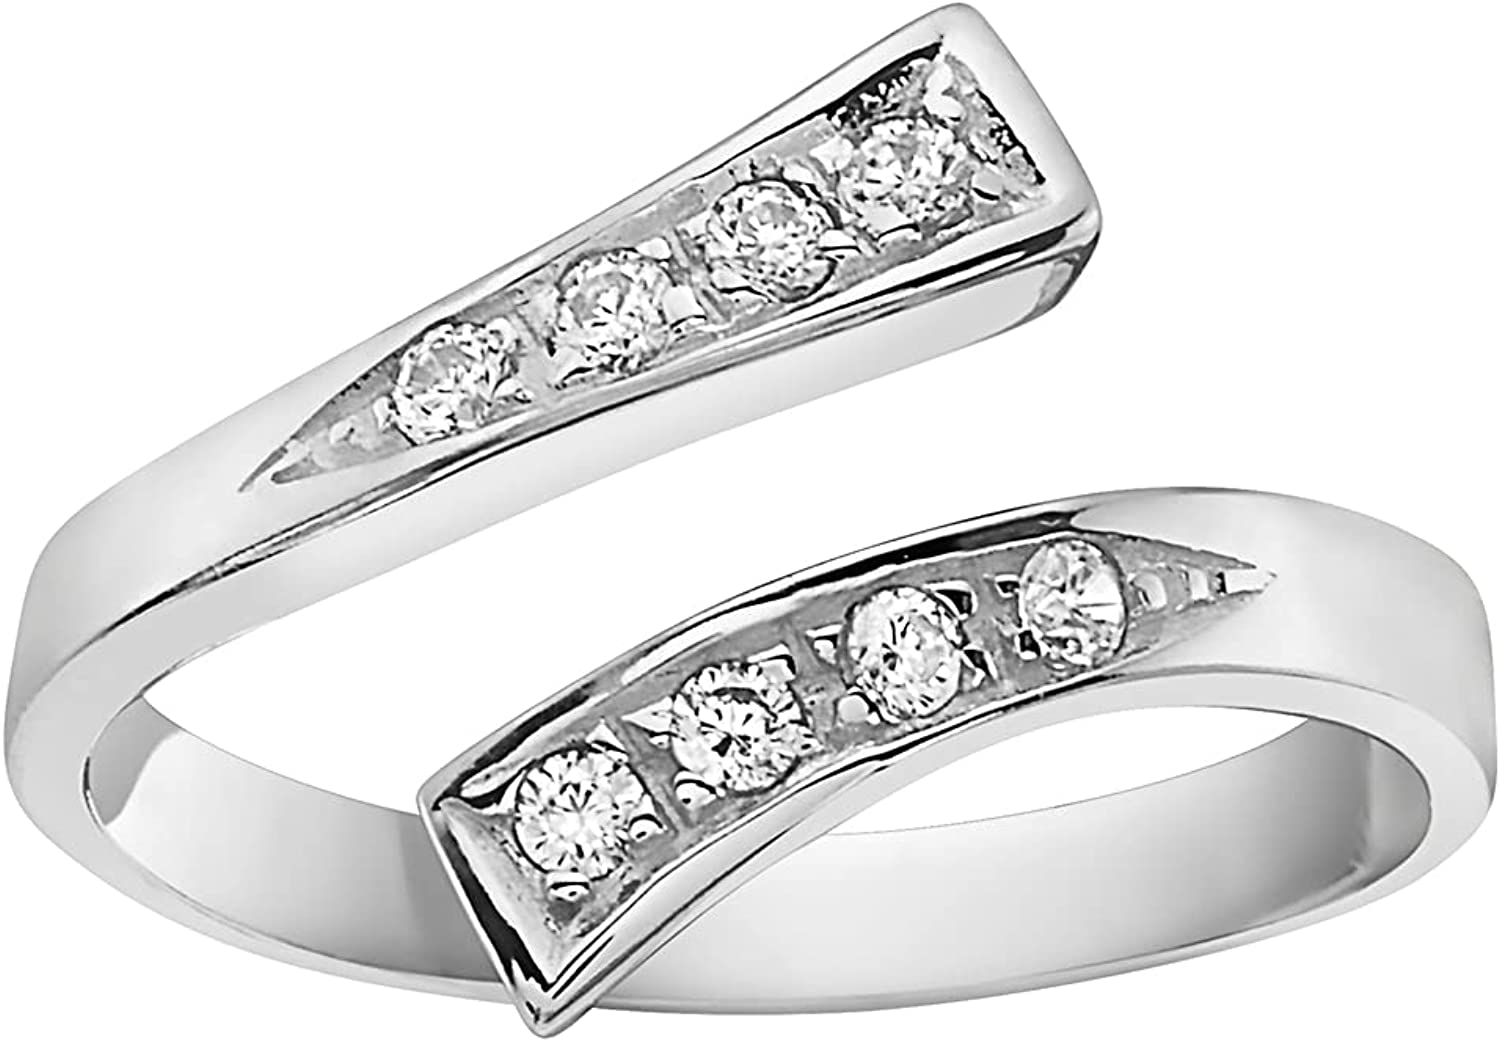 Ritastephens 14K Gold Crossover Shiny CZ Cubic Zirconia Toe Ring or Ring Adjustable (Yellow or White)